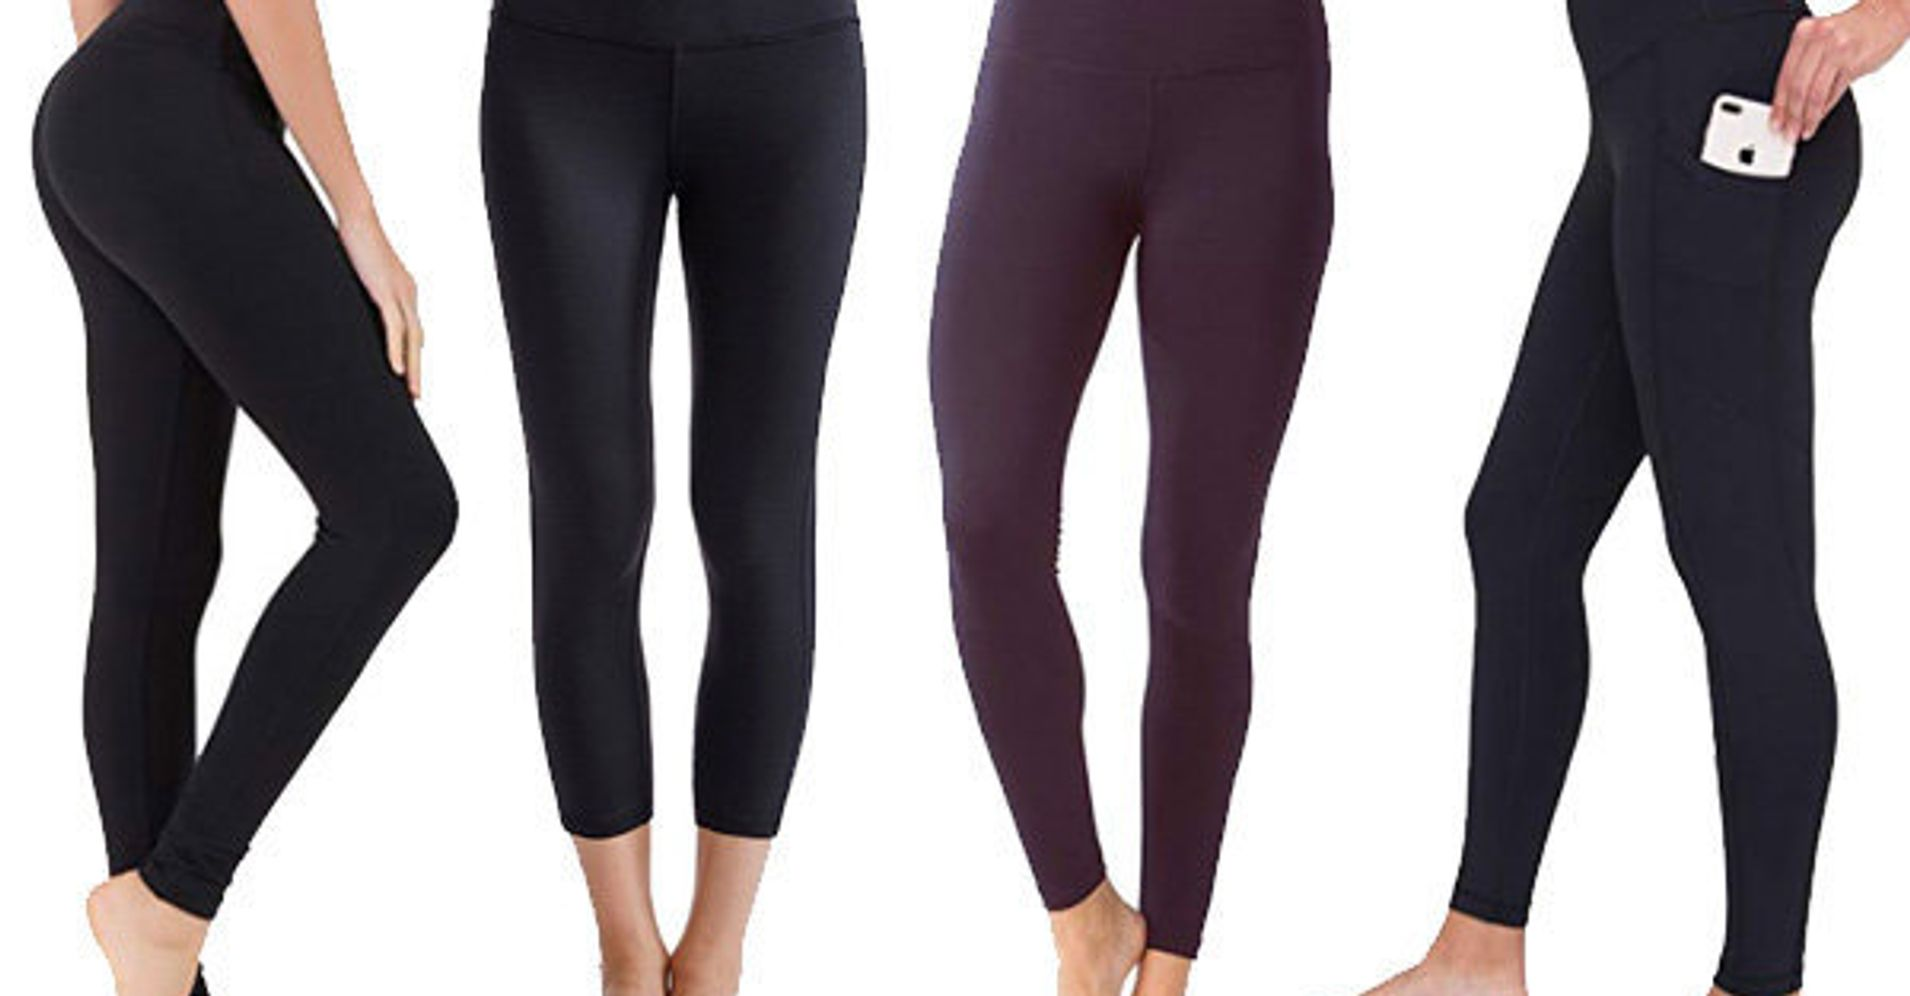 1f251a6ba6 The Most Flattering Yoga Pants On Amazon, According To Reviewers | HuffPost  Life